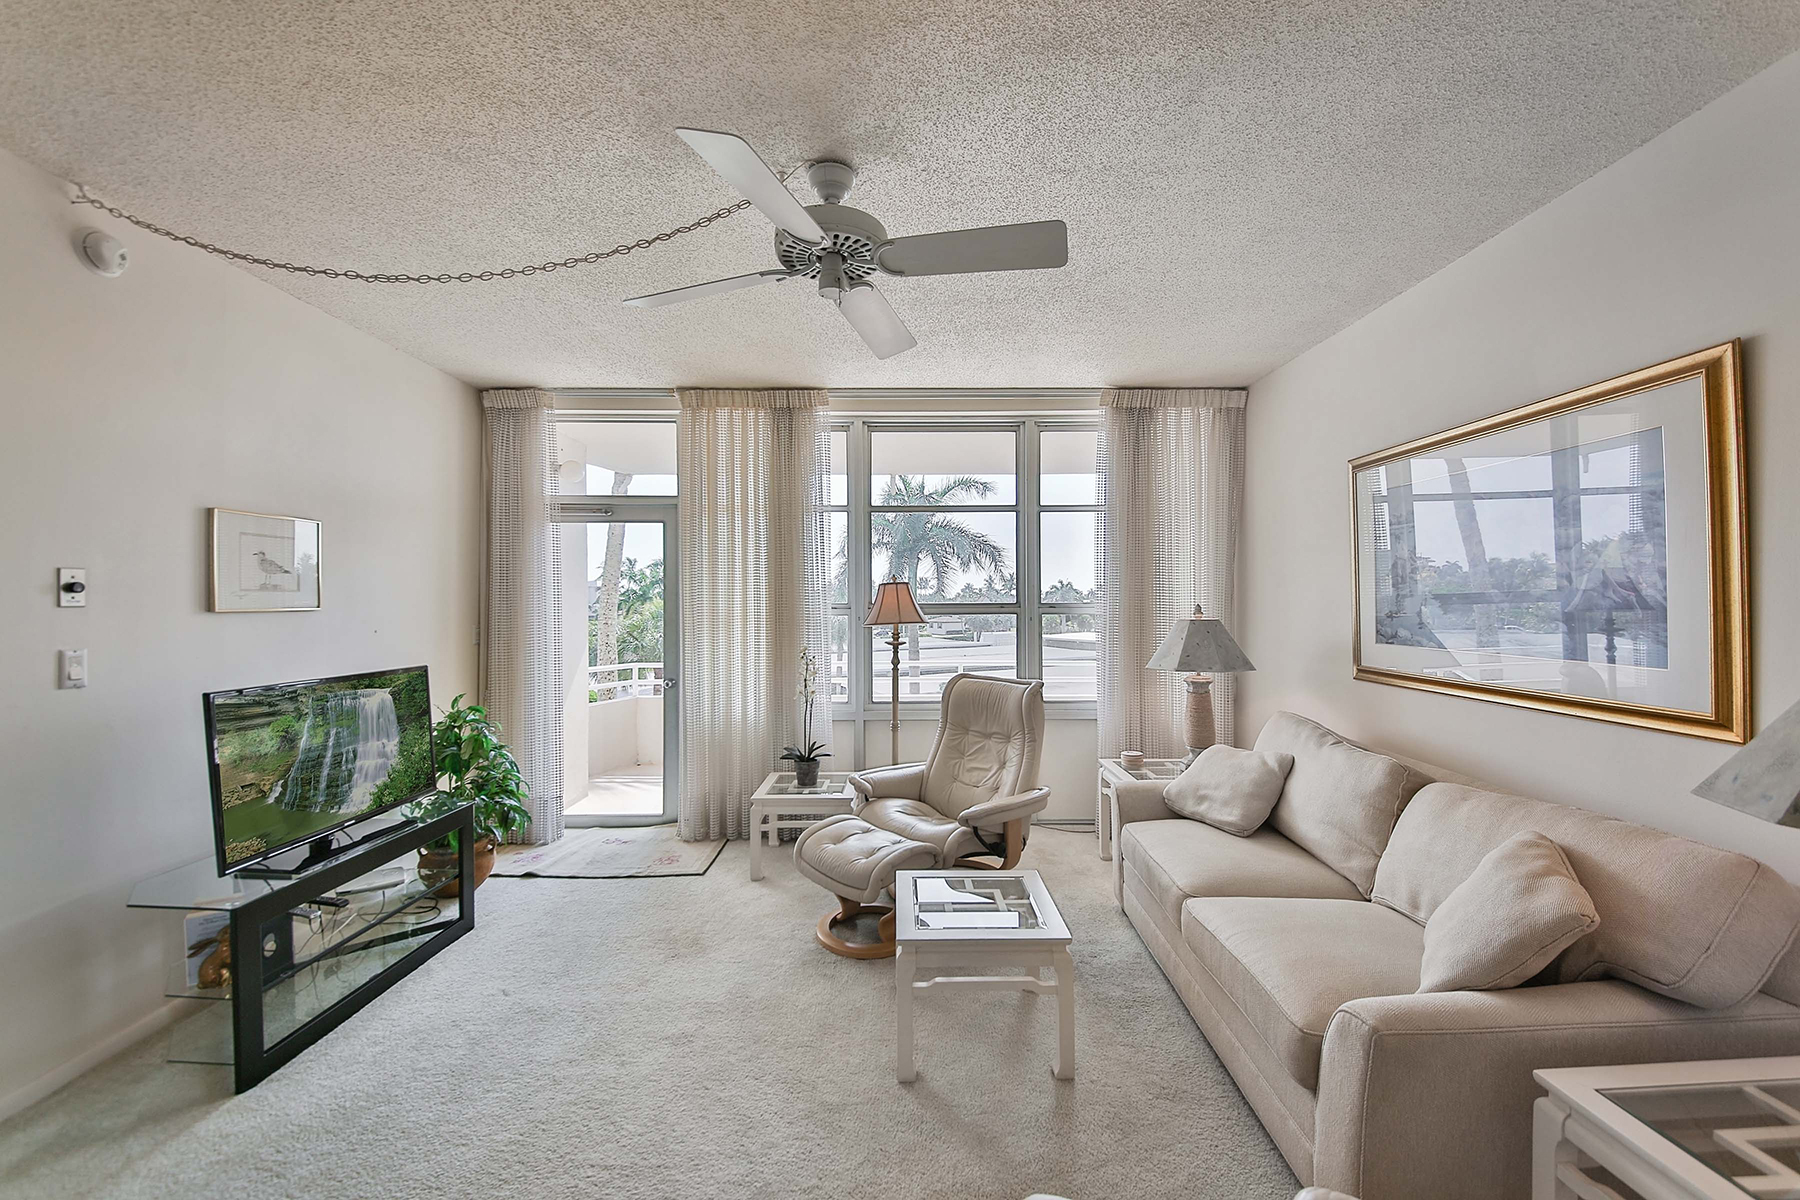 Condominium for Sale at MARCO ISLAND 240 Seaview Ct 304, Marco Island, Florida 34145 United States